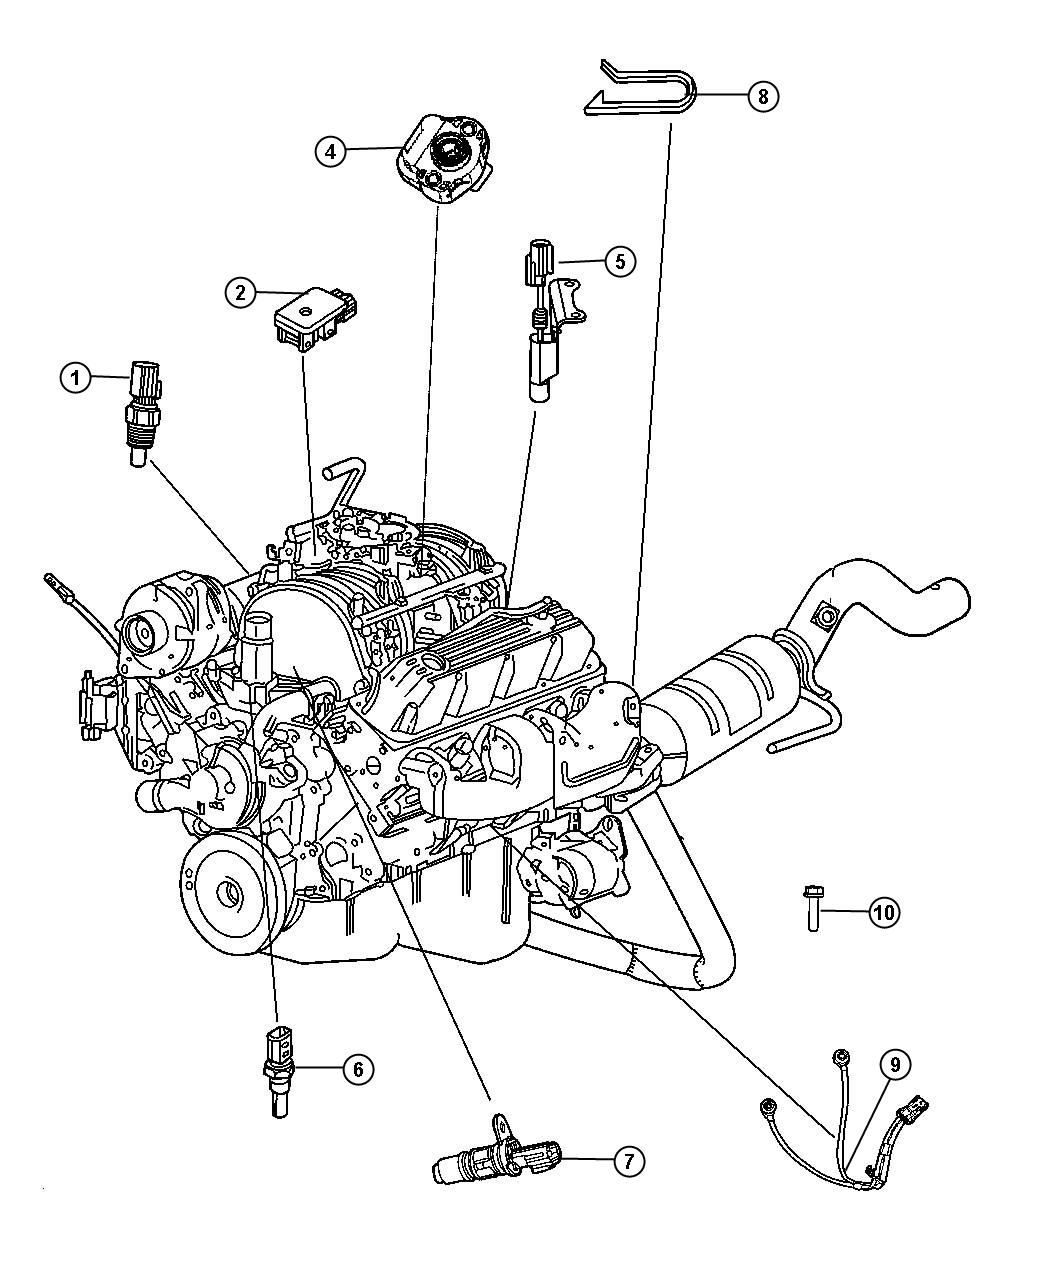 toyota tailgate parts diagram  toyota  get free image about wiring diagram